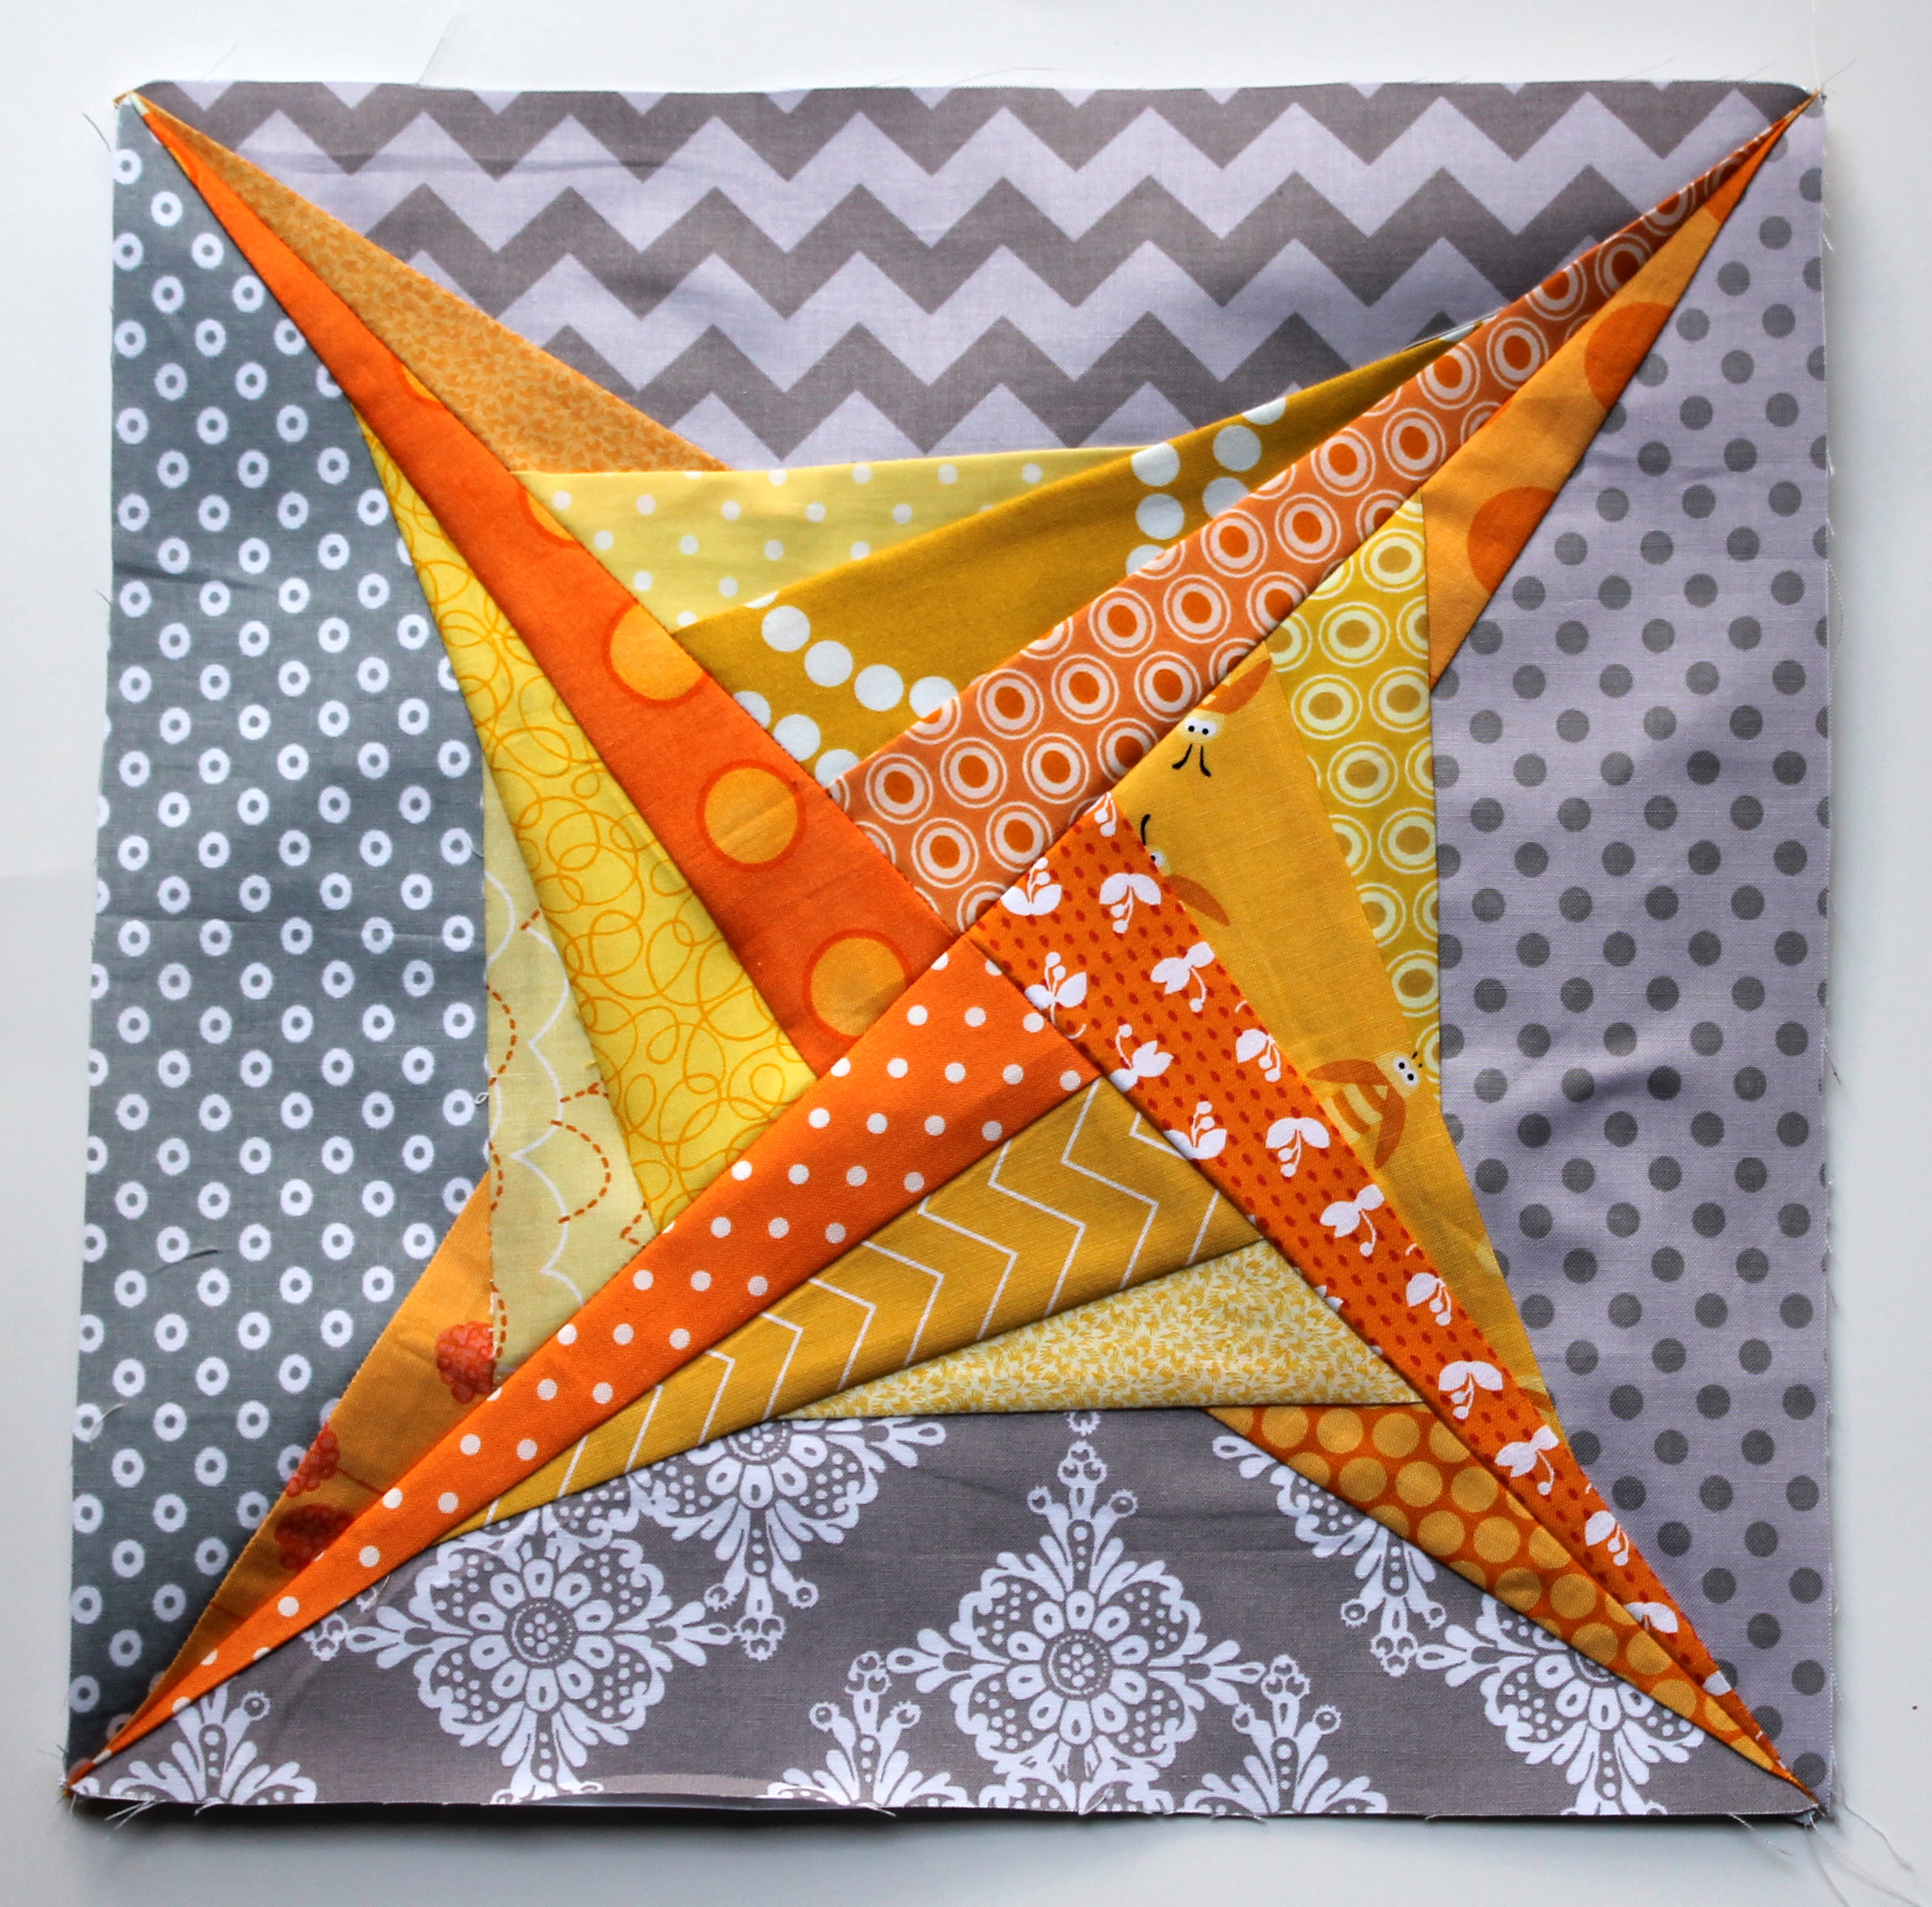 Paper Piece Quilting Instructions: Paper Piecing Monday Presents Zeppelin